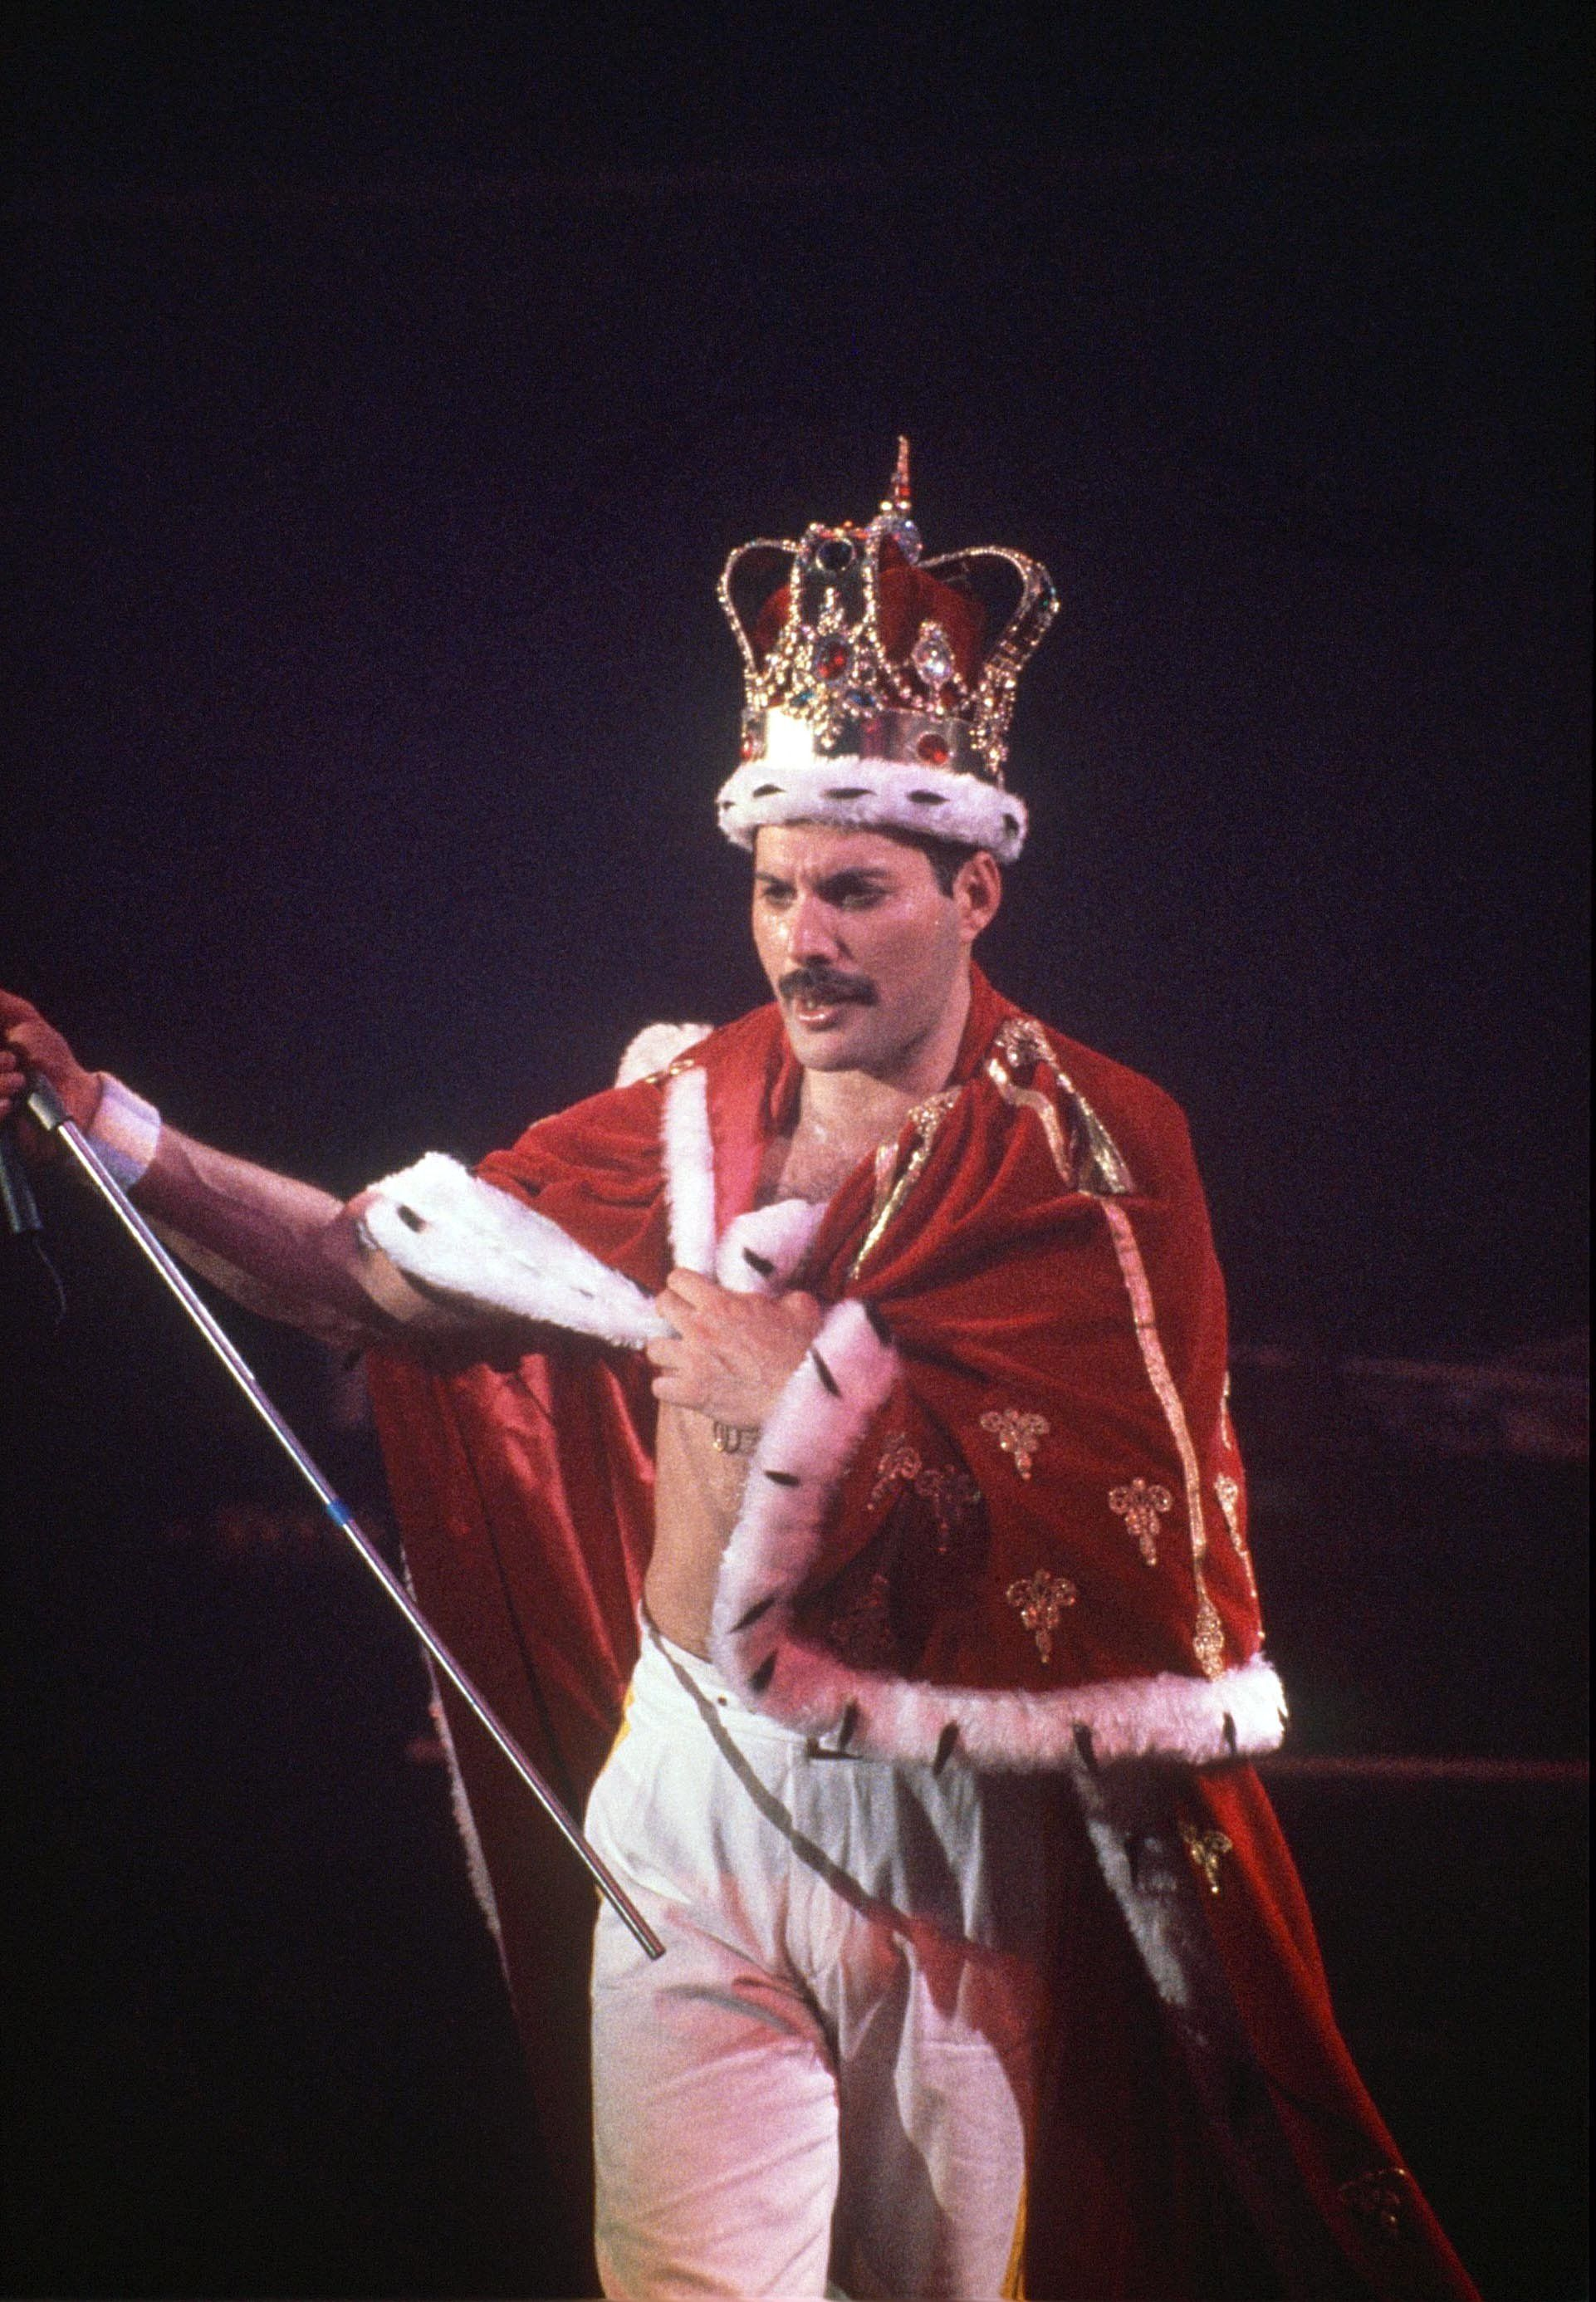 Remembering The Wit And Wisdom Of Freddie Mercury With 25 Of His Best